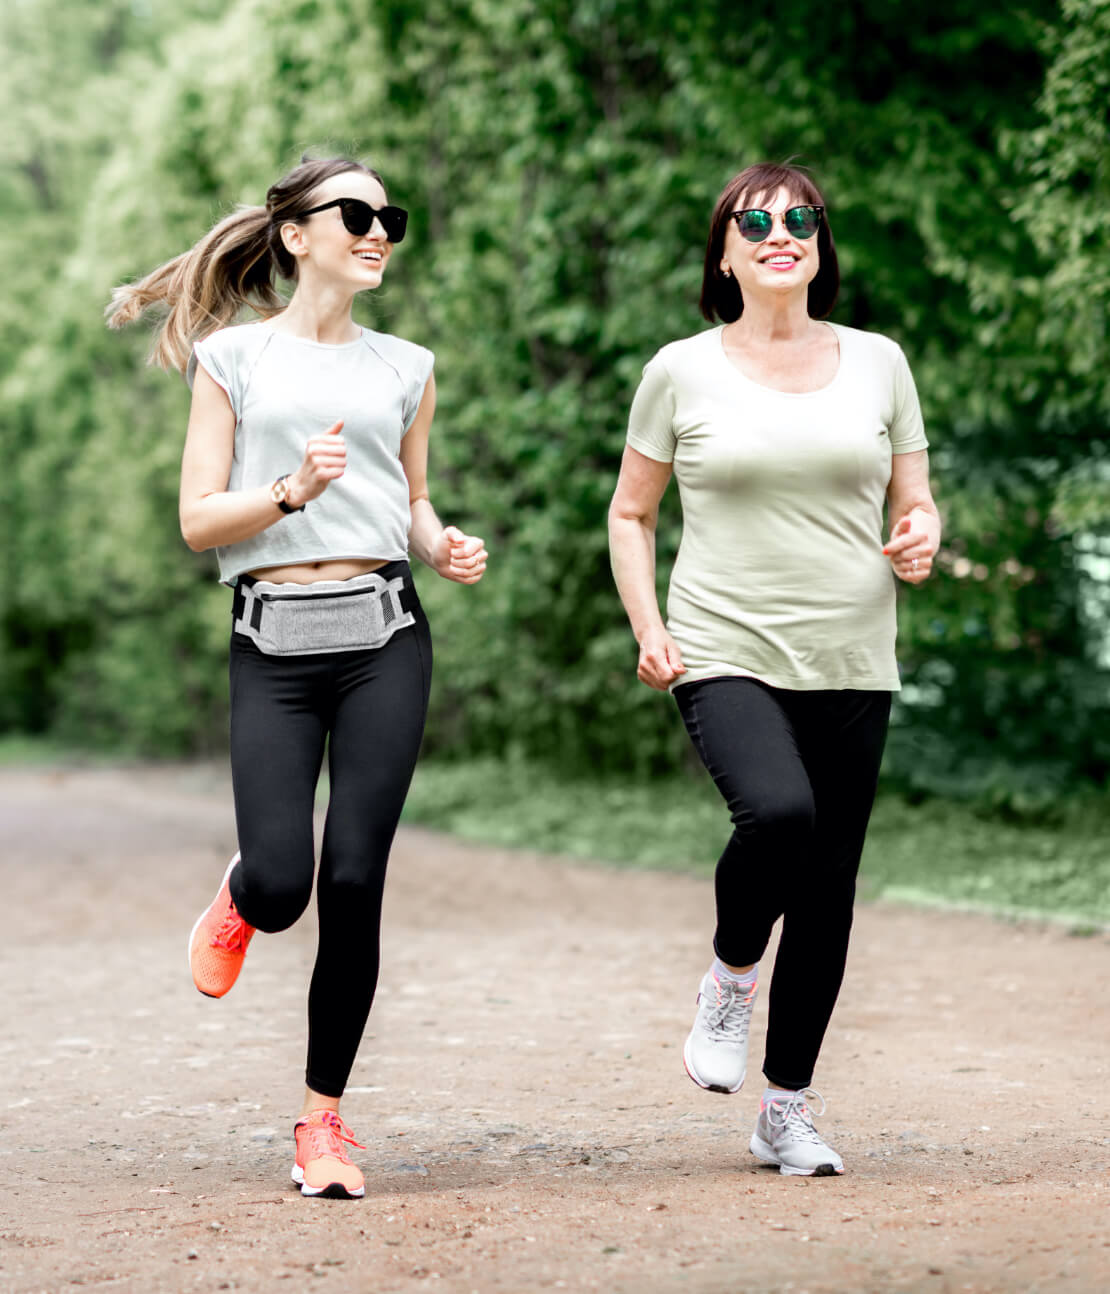 Two women out for a jog.